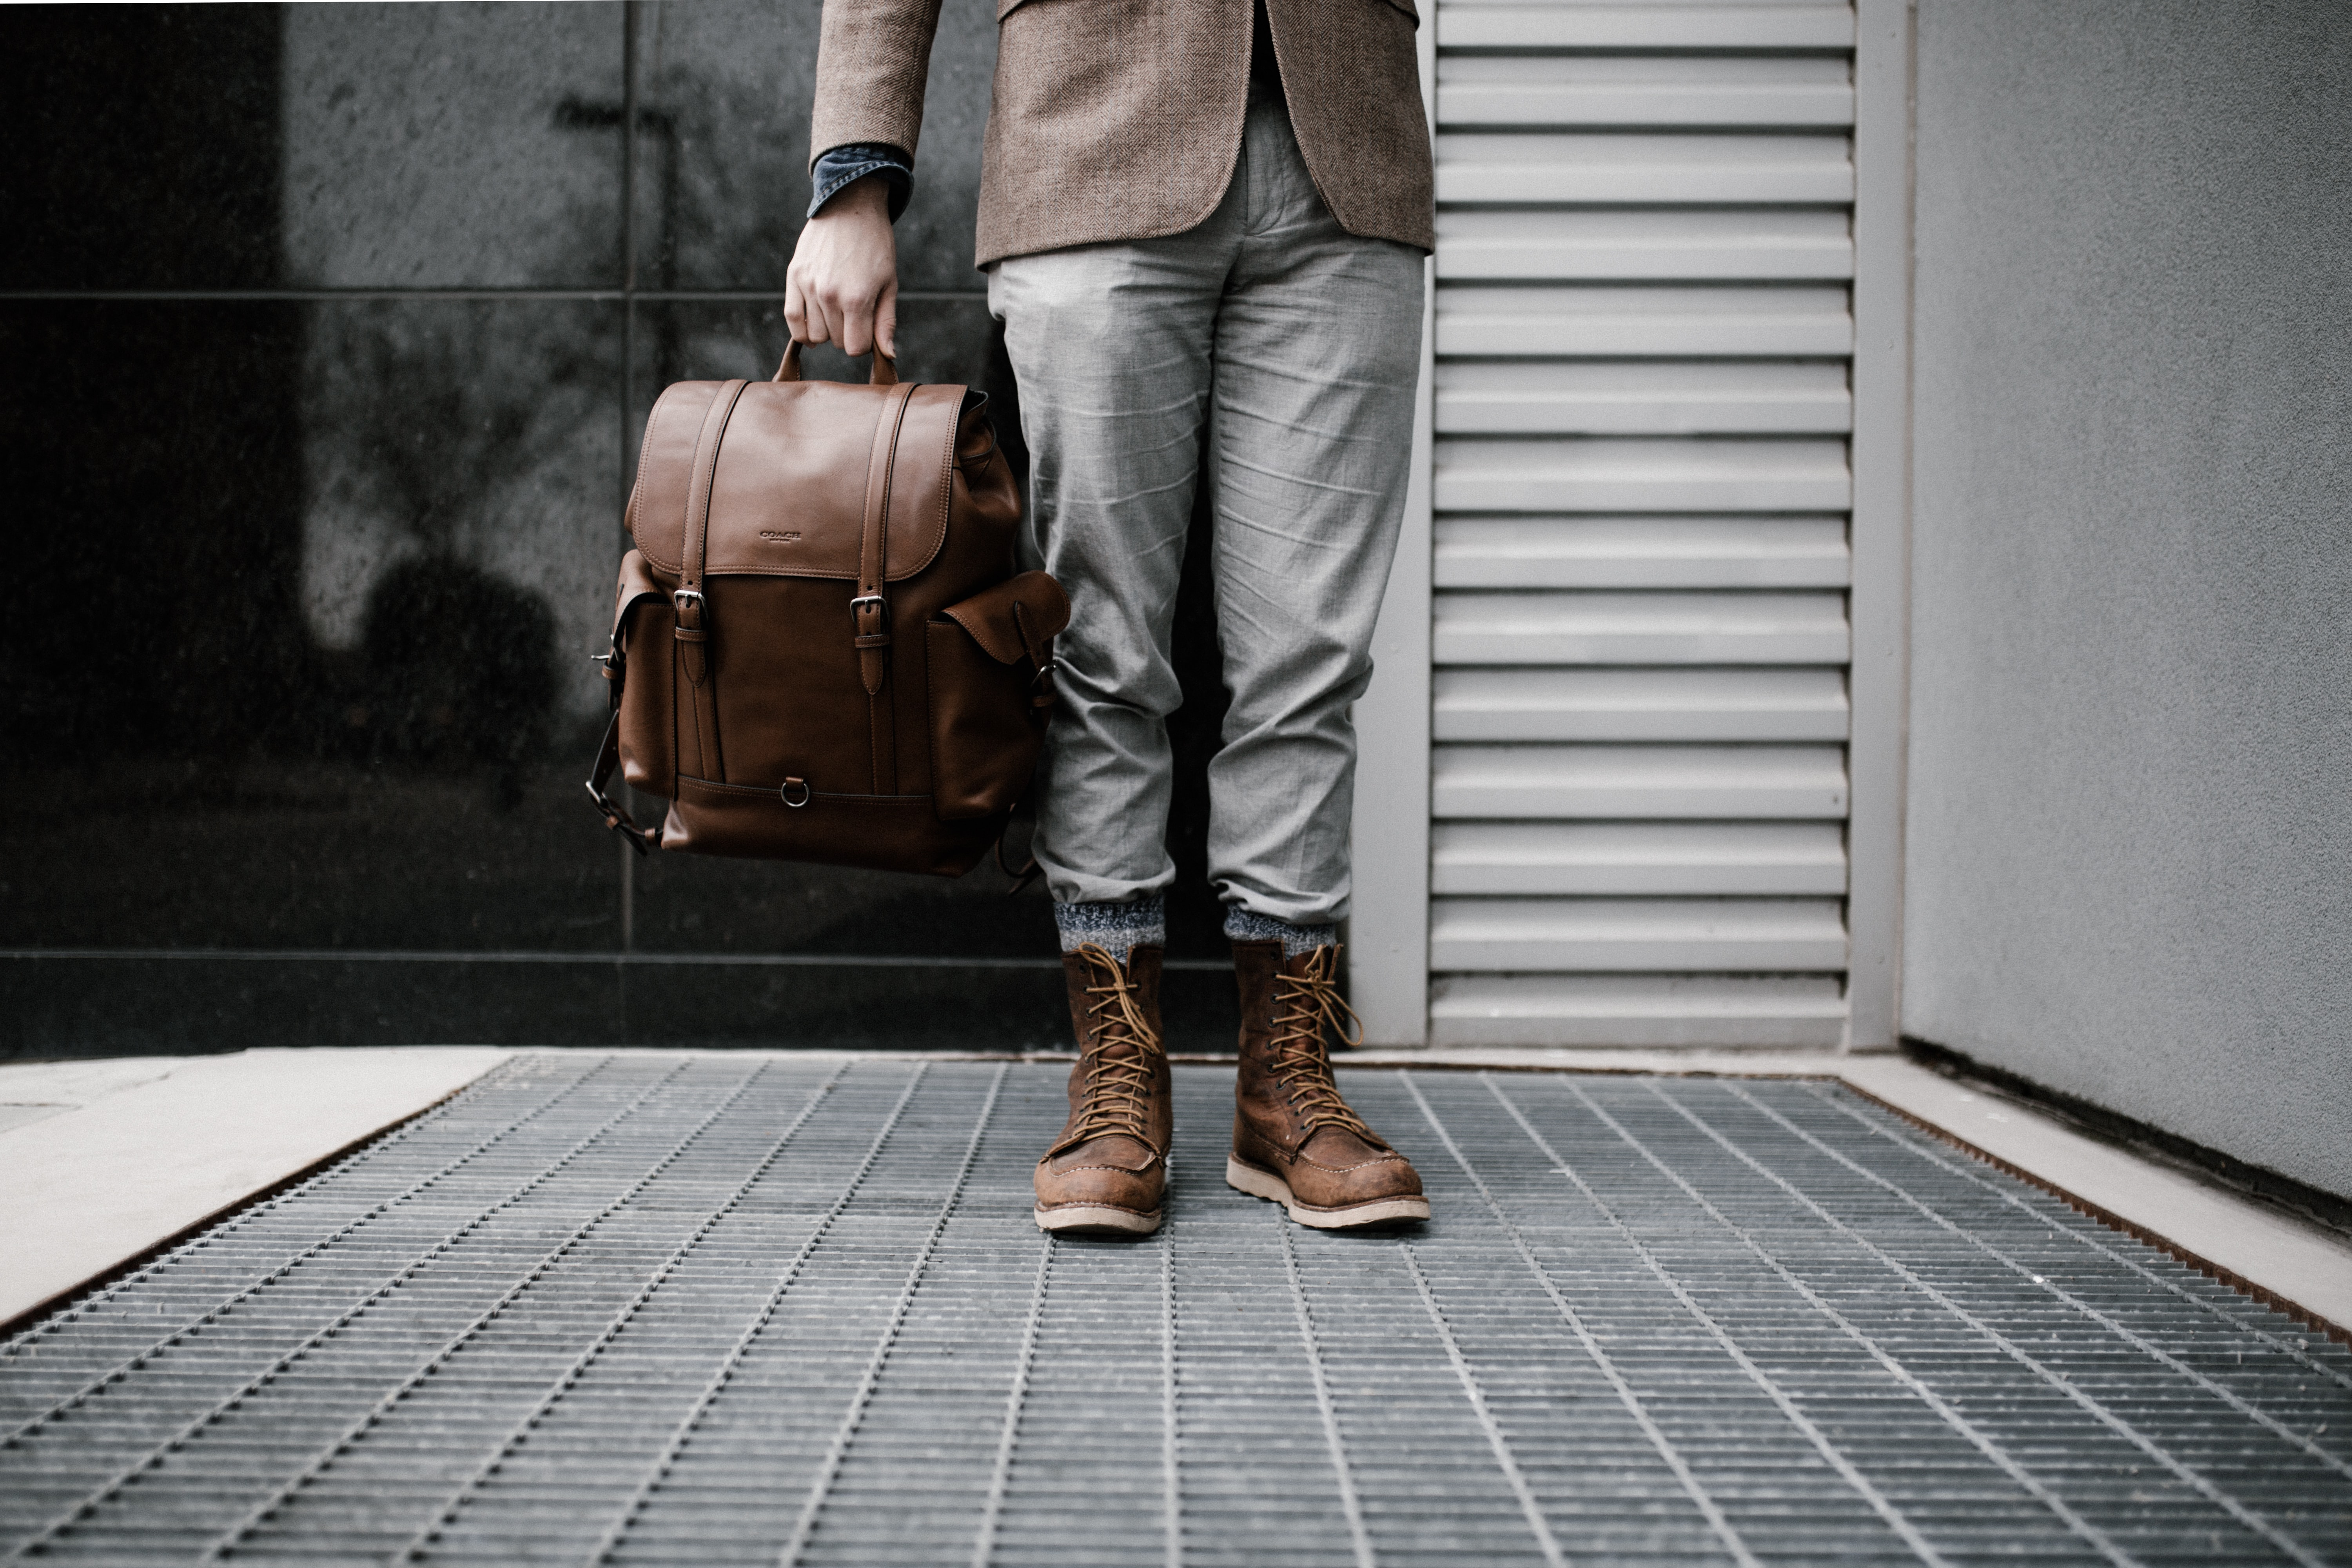 A low shot of a man in leather boots carrying a brown leather bag